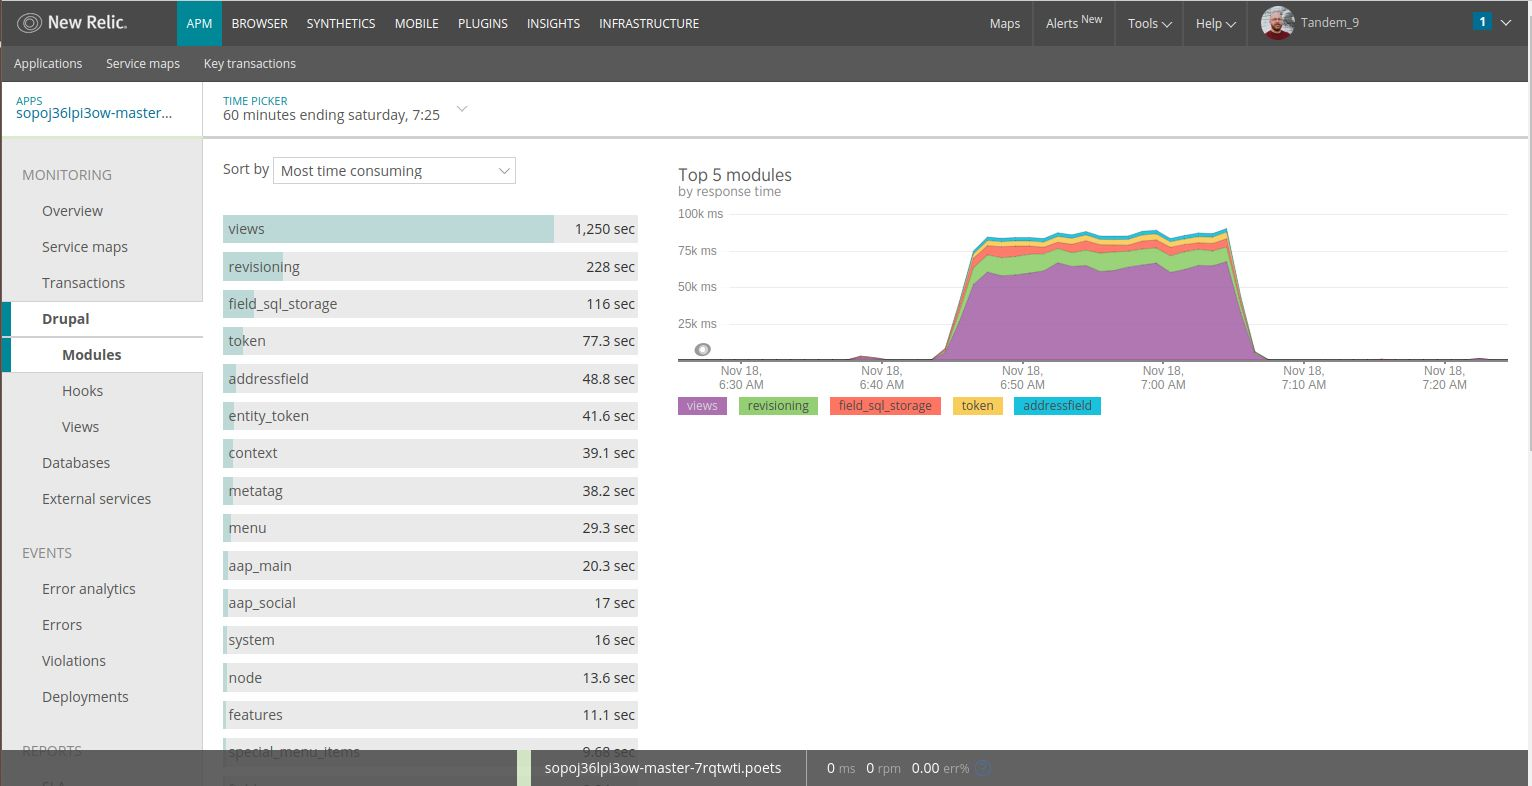 New Relic Before Tweaks Results